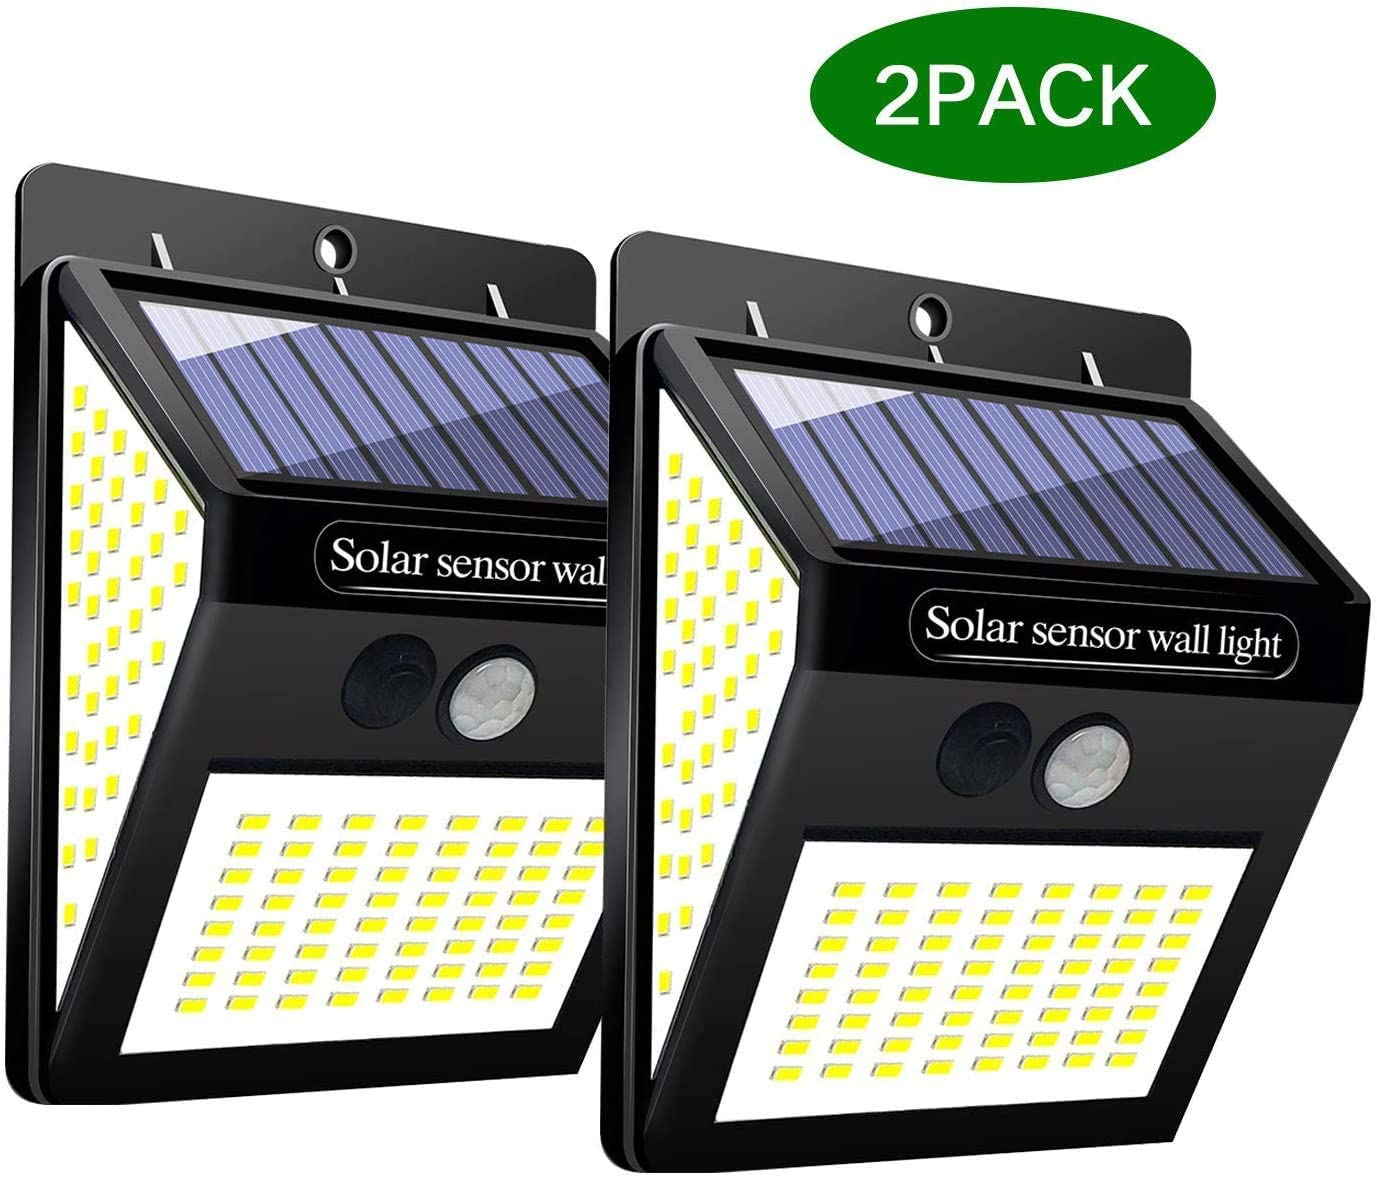 1Pack Gute Solar Lights Outdoor,144 LED Solar Wall Lights Outdoor,IP65 Waterproof Solar Motion Sensor Security Lights With120/°Wide Solar Powered Wireless Wall Lights for Garden Patio Yard